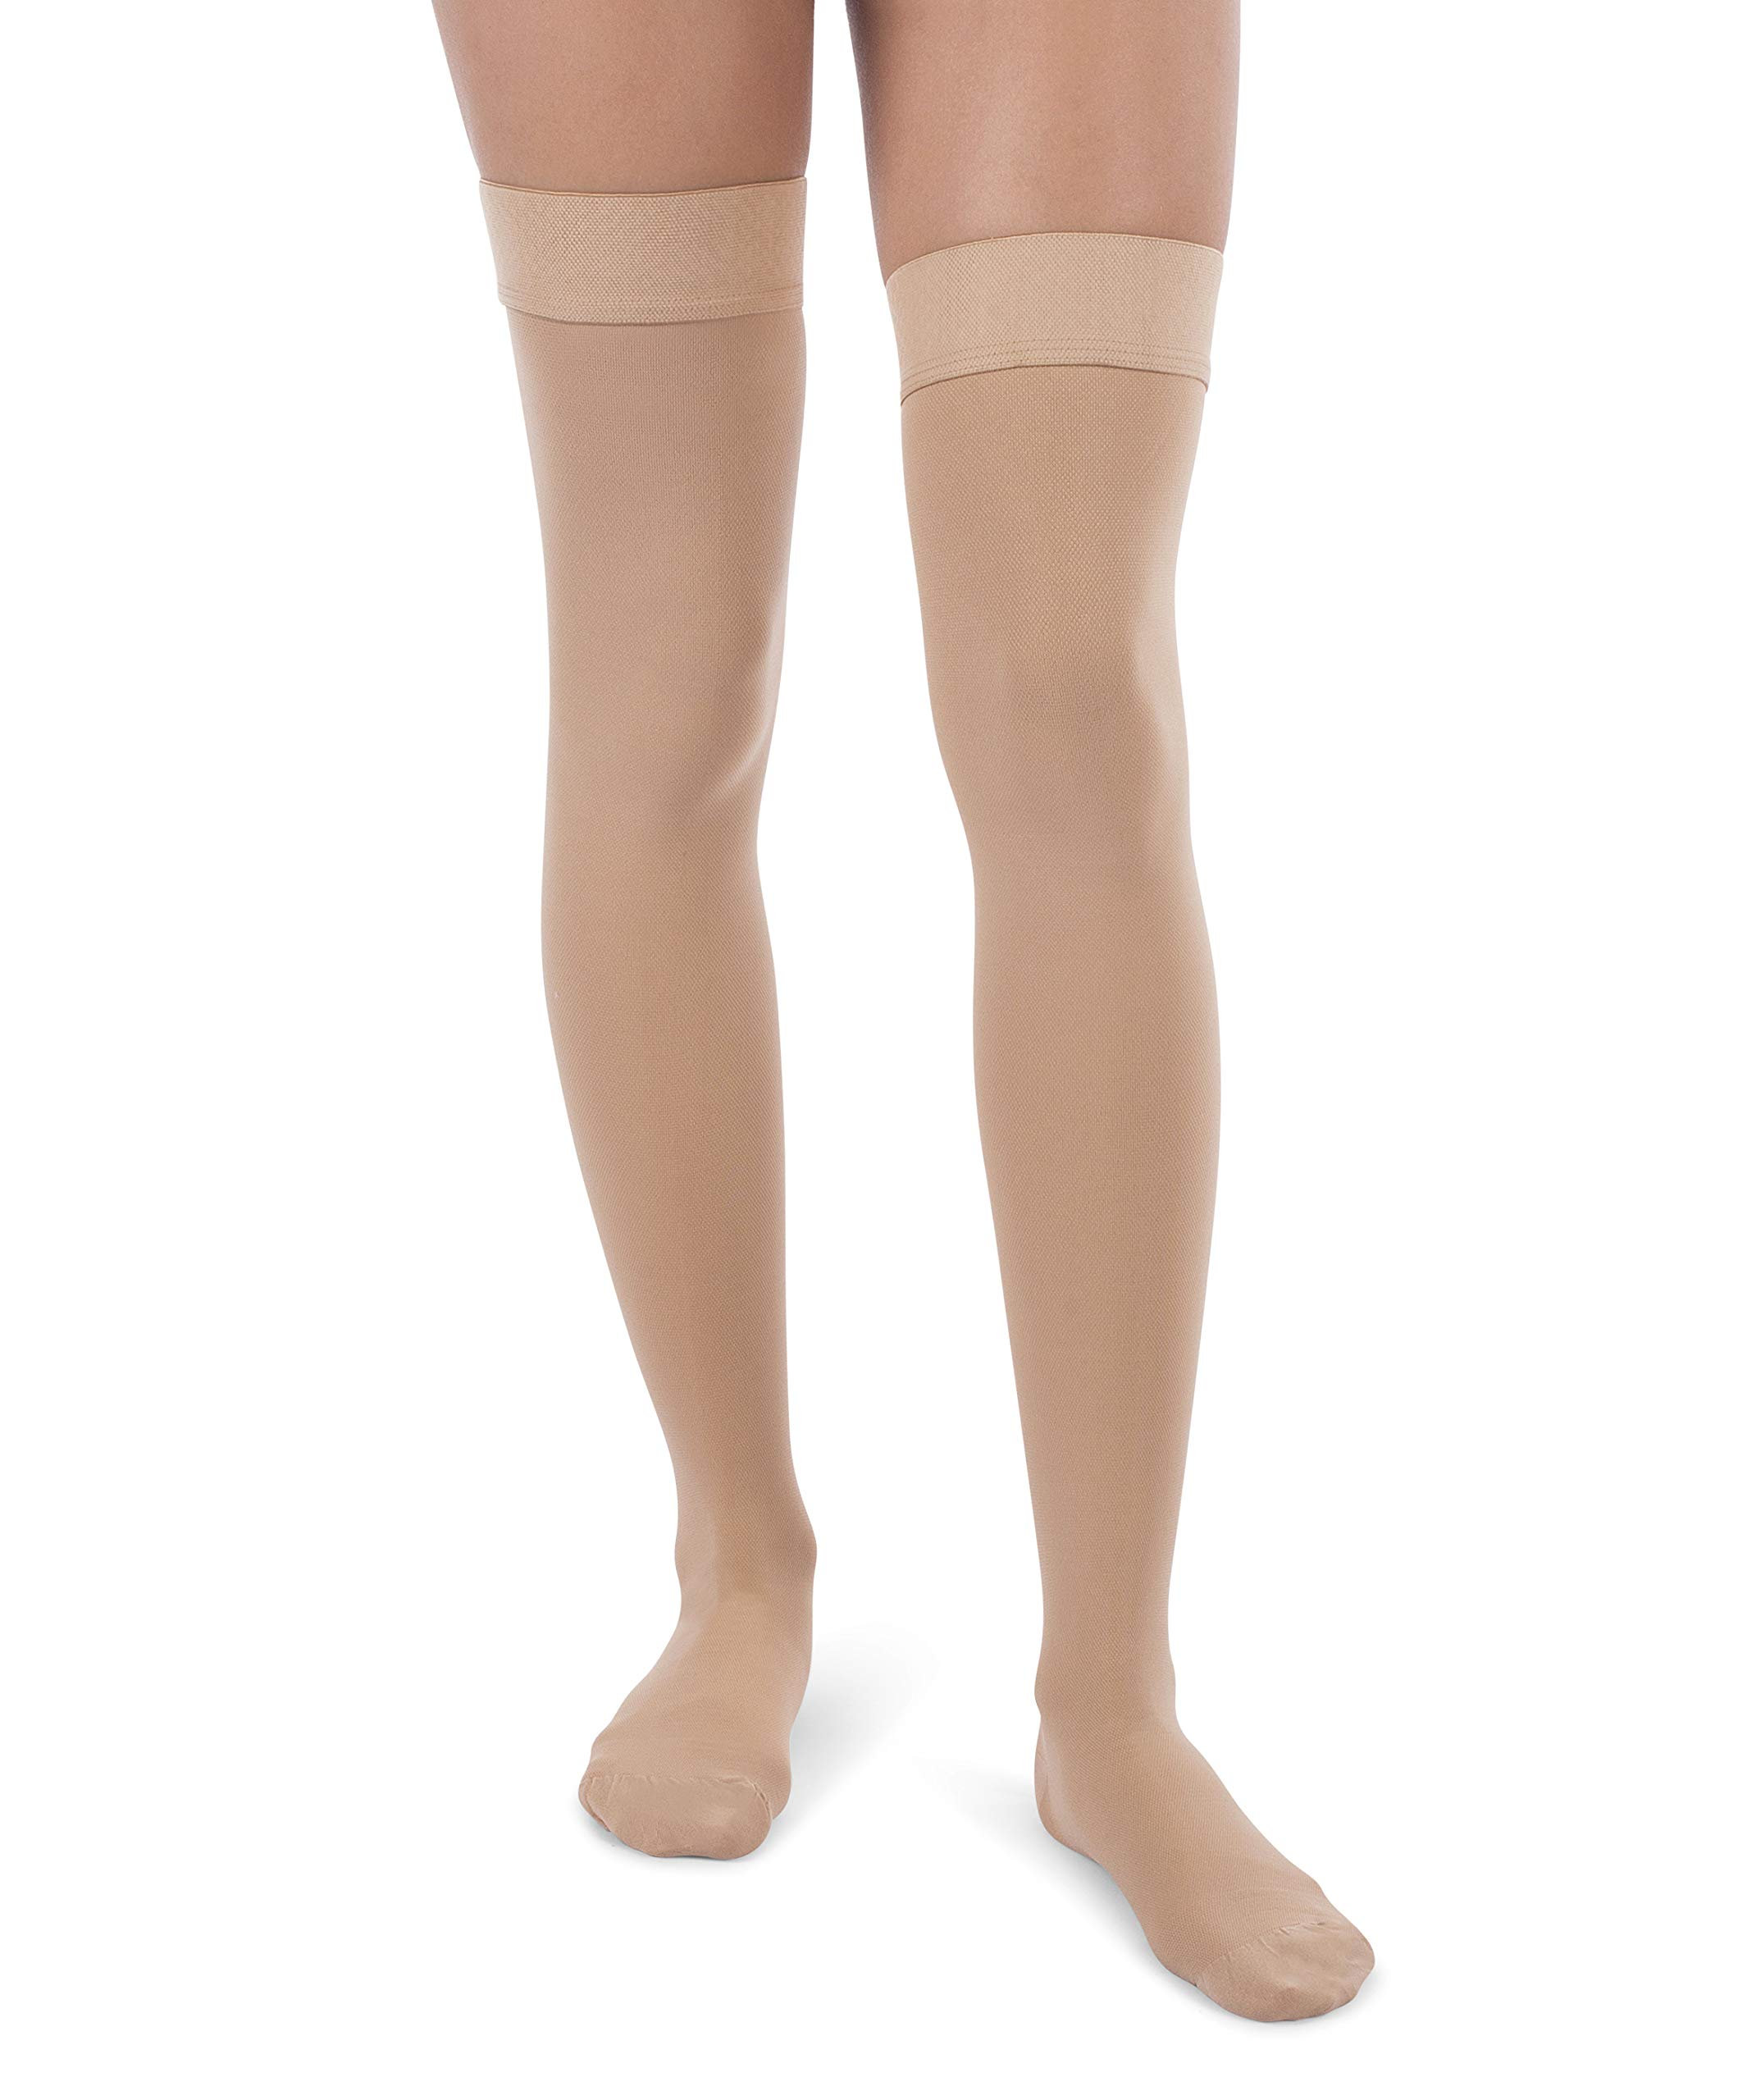 Jomi Compression, Unisex, Thigh High Stockings Collection, 20-30mmHg Surgical Weight Closed Toe 240 (Small, Beige) by JOMI COMPRESSION